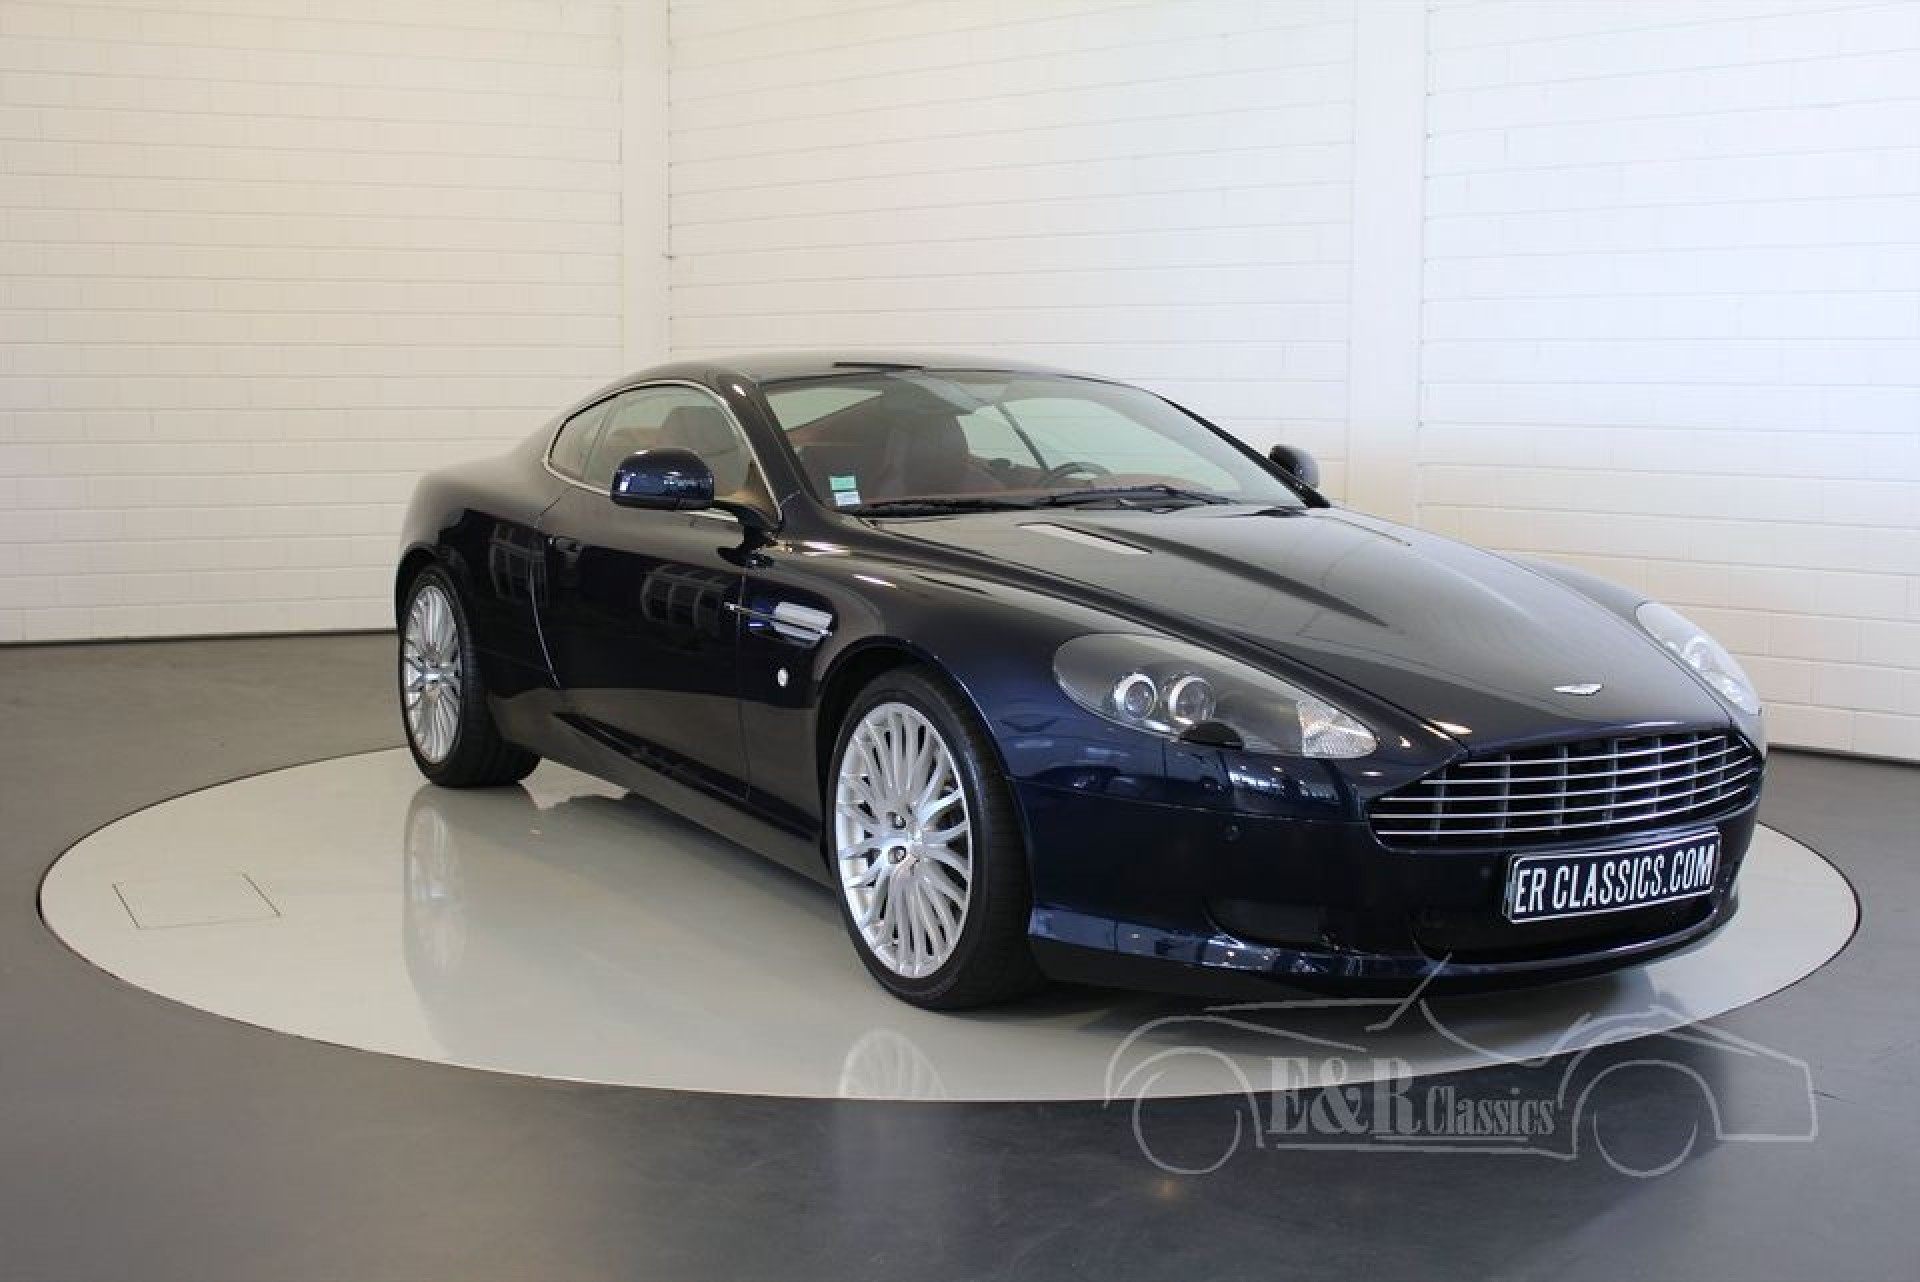 aston martin db9 coupe v12 2010 vendre erclassics. Black Bedroom Furniture Sets. Home Design Ideas